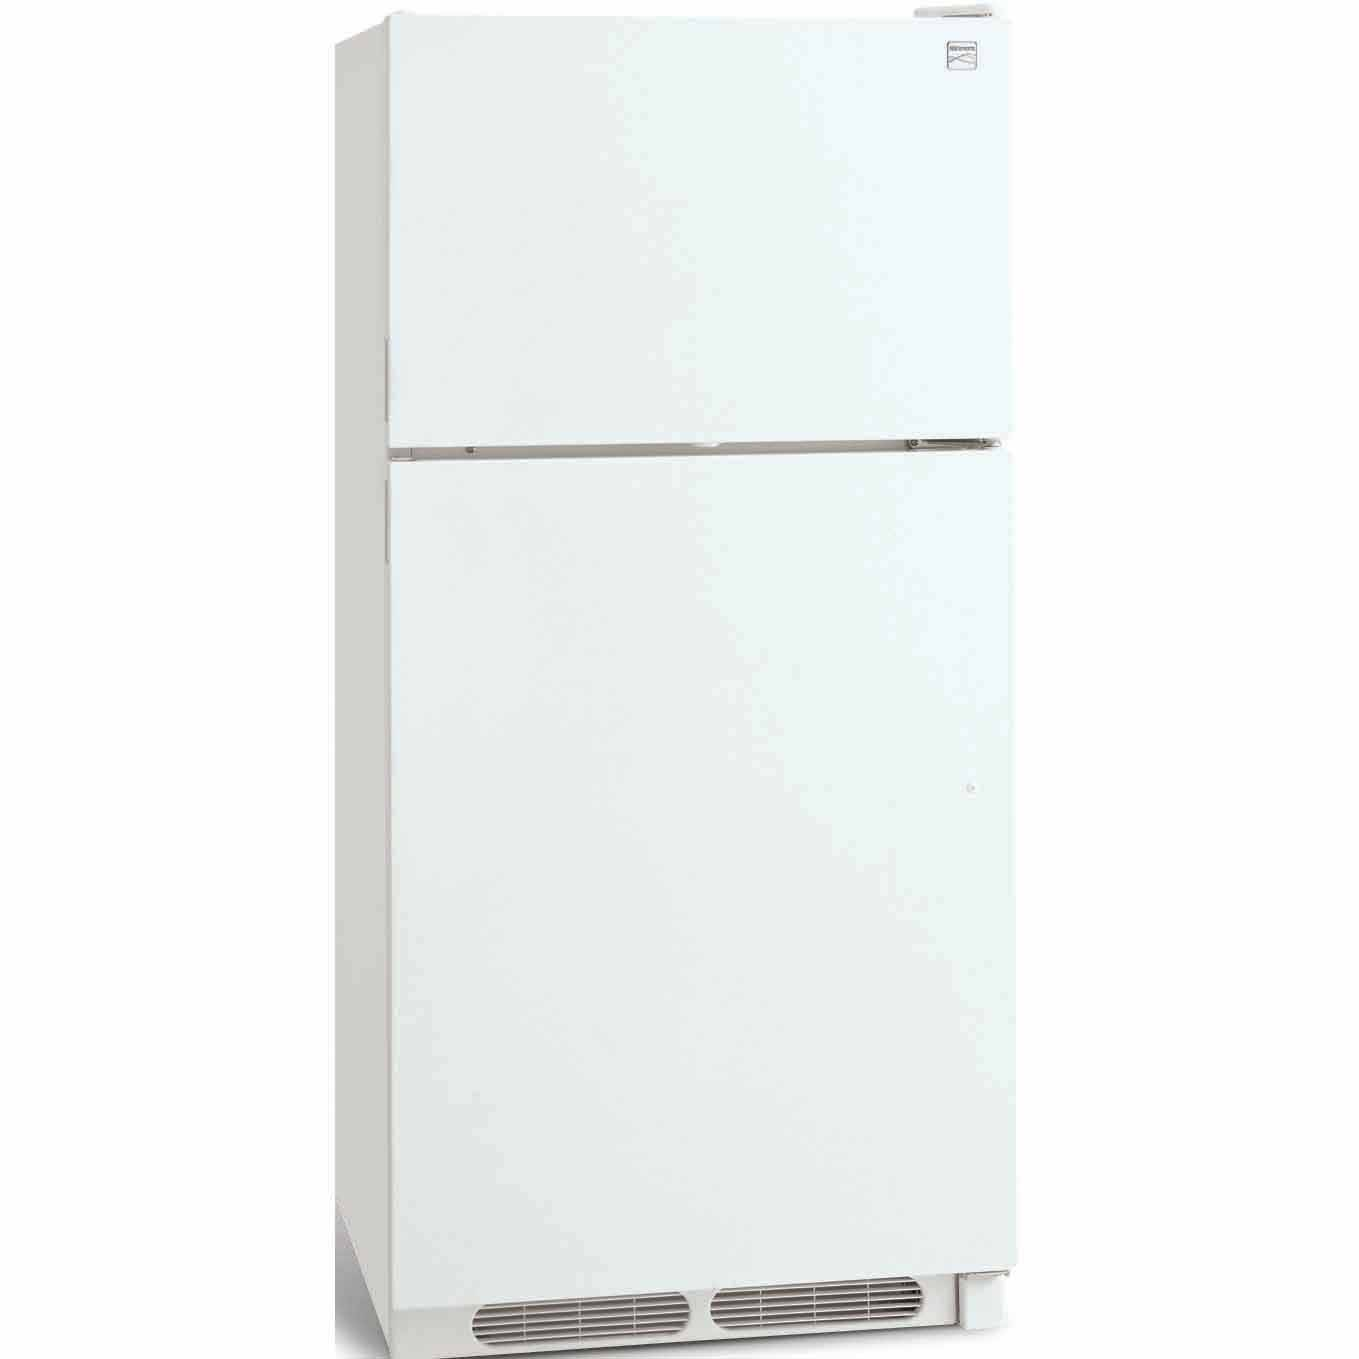 Kenmore 16.3 cu. ft. Top Mount Refrigerator - White